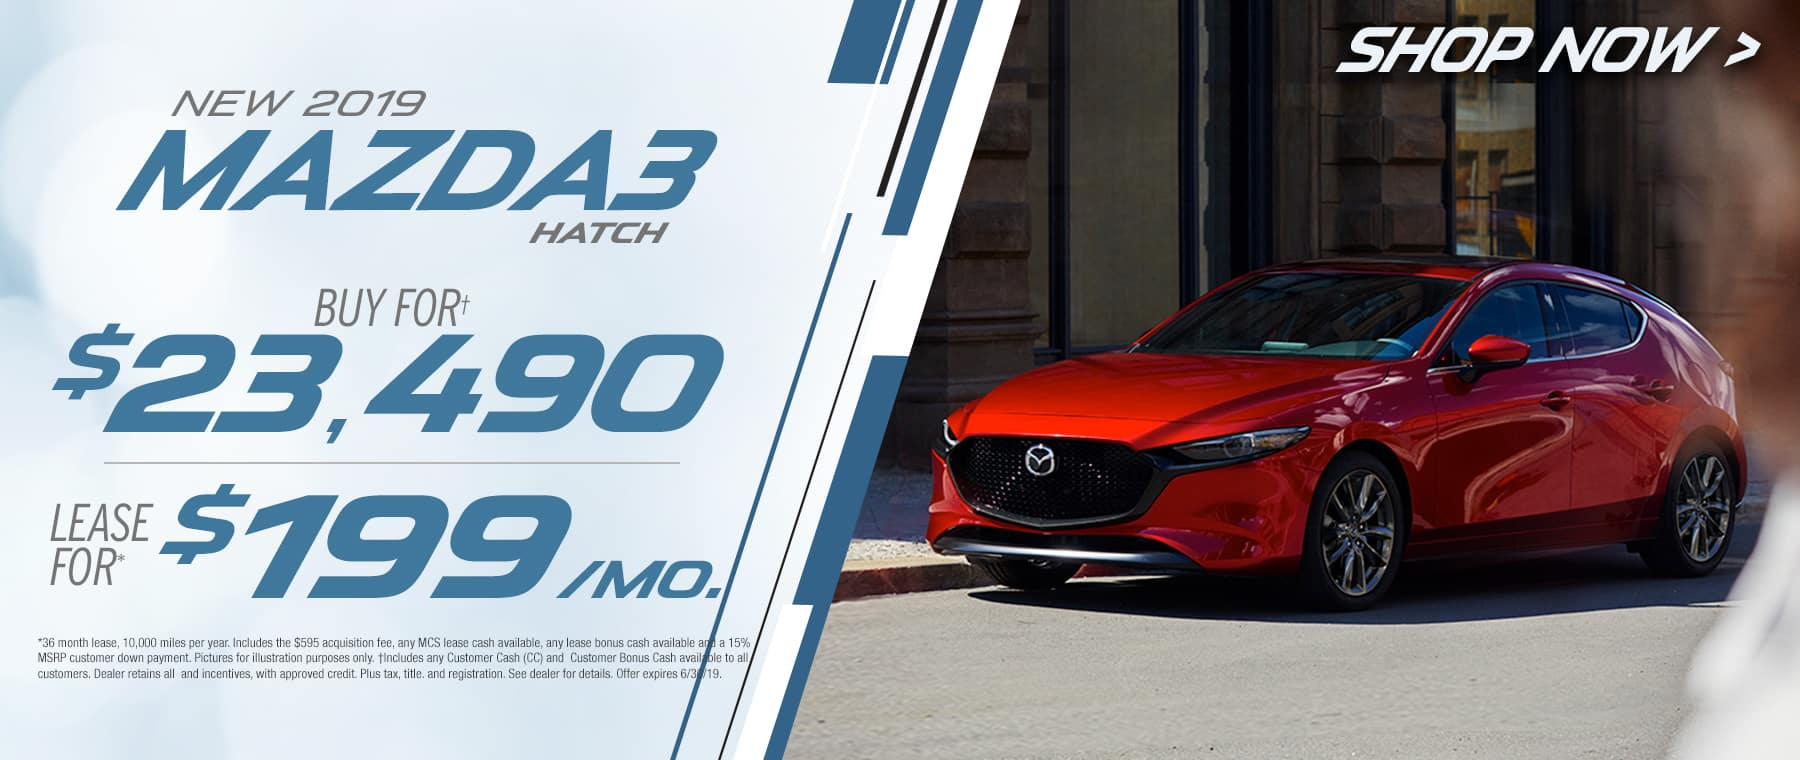 2019 Mazda3 Hatch$199 Per Month OR Buy For $23490